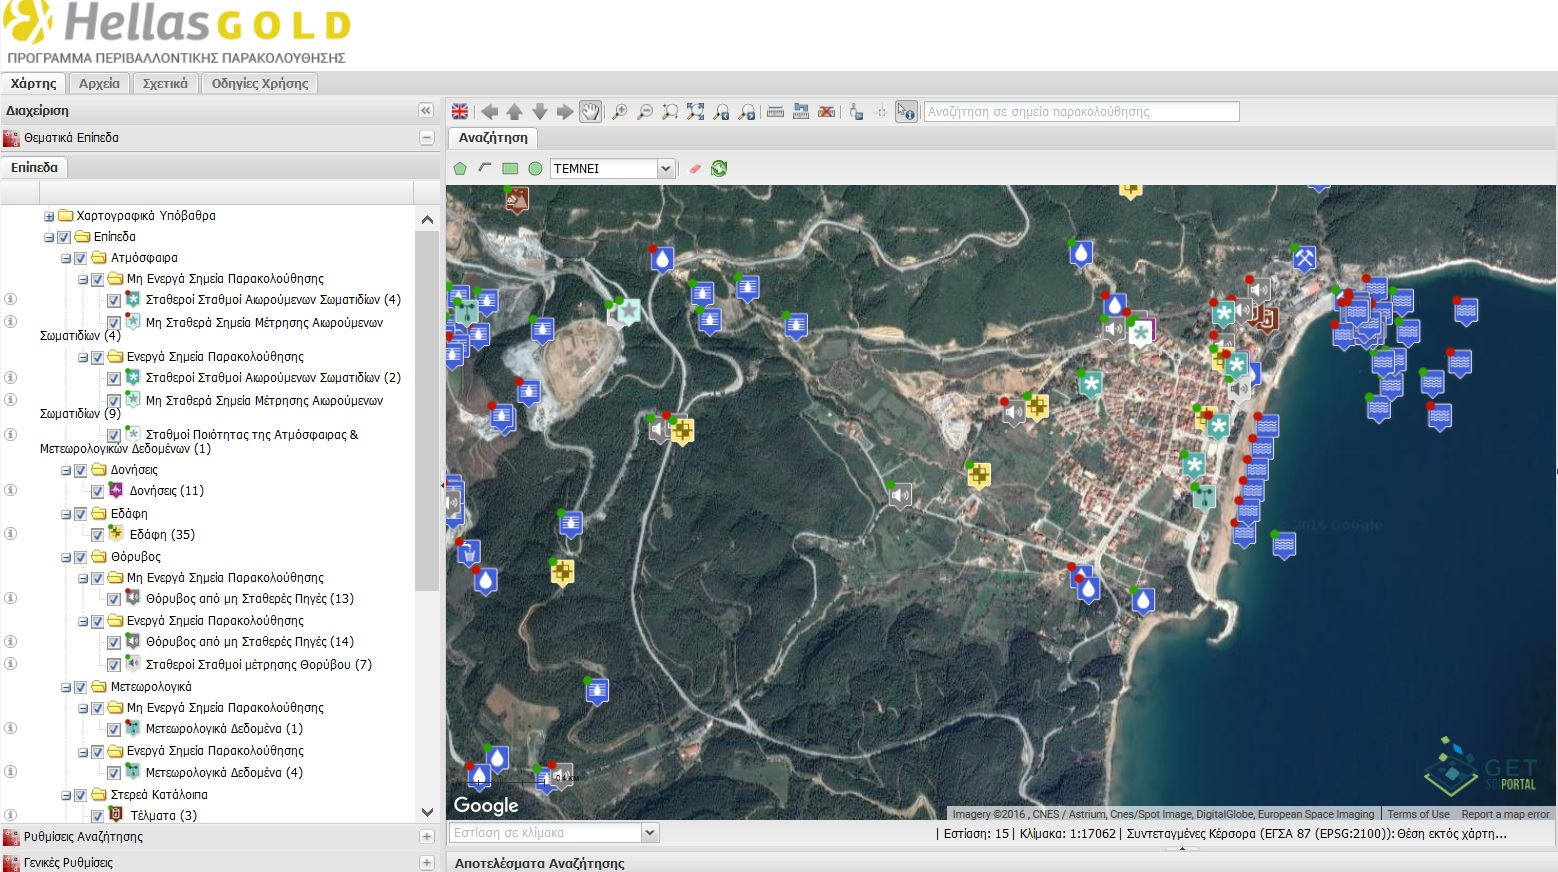 Web application for displaying data of Hellenic Gold monitoring program